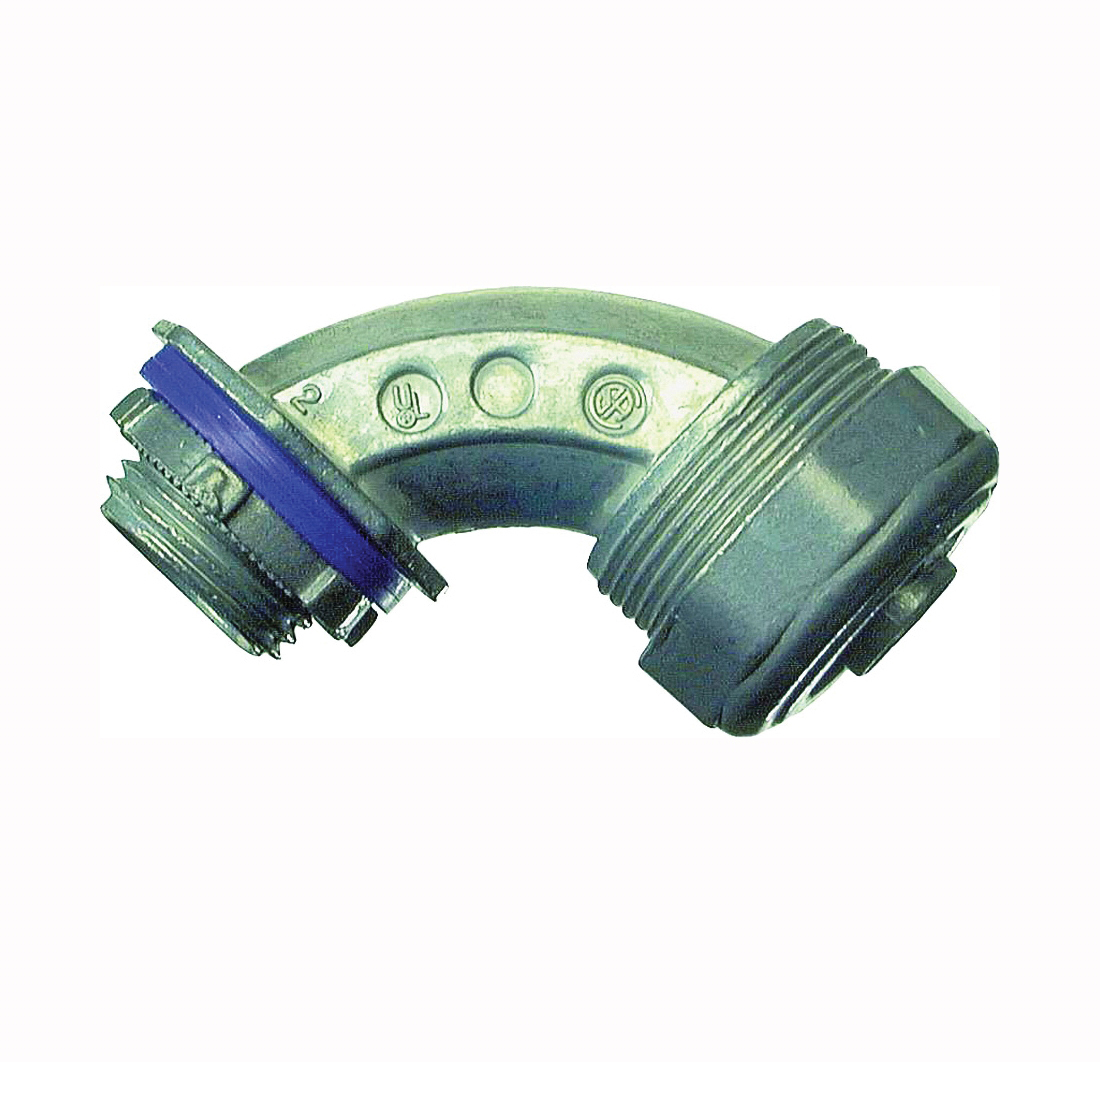 Picture of Halex 16907B Conduit Elbow, 90 deg Angle, 3/4 in Trade, Compression, Zinc